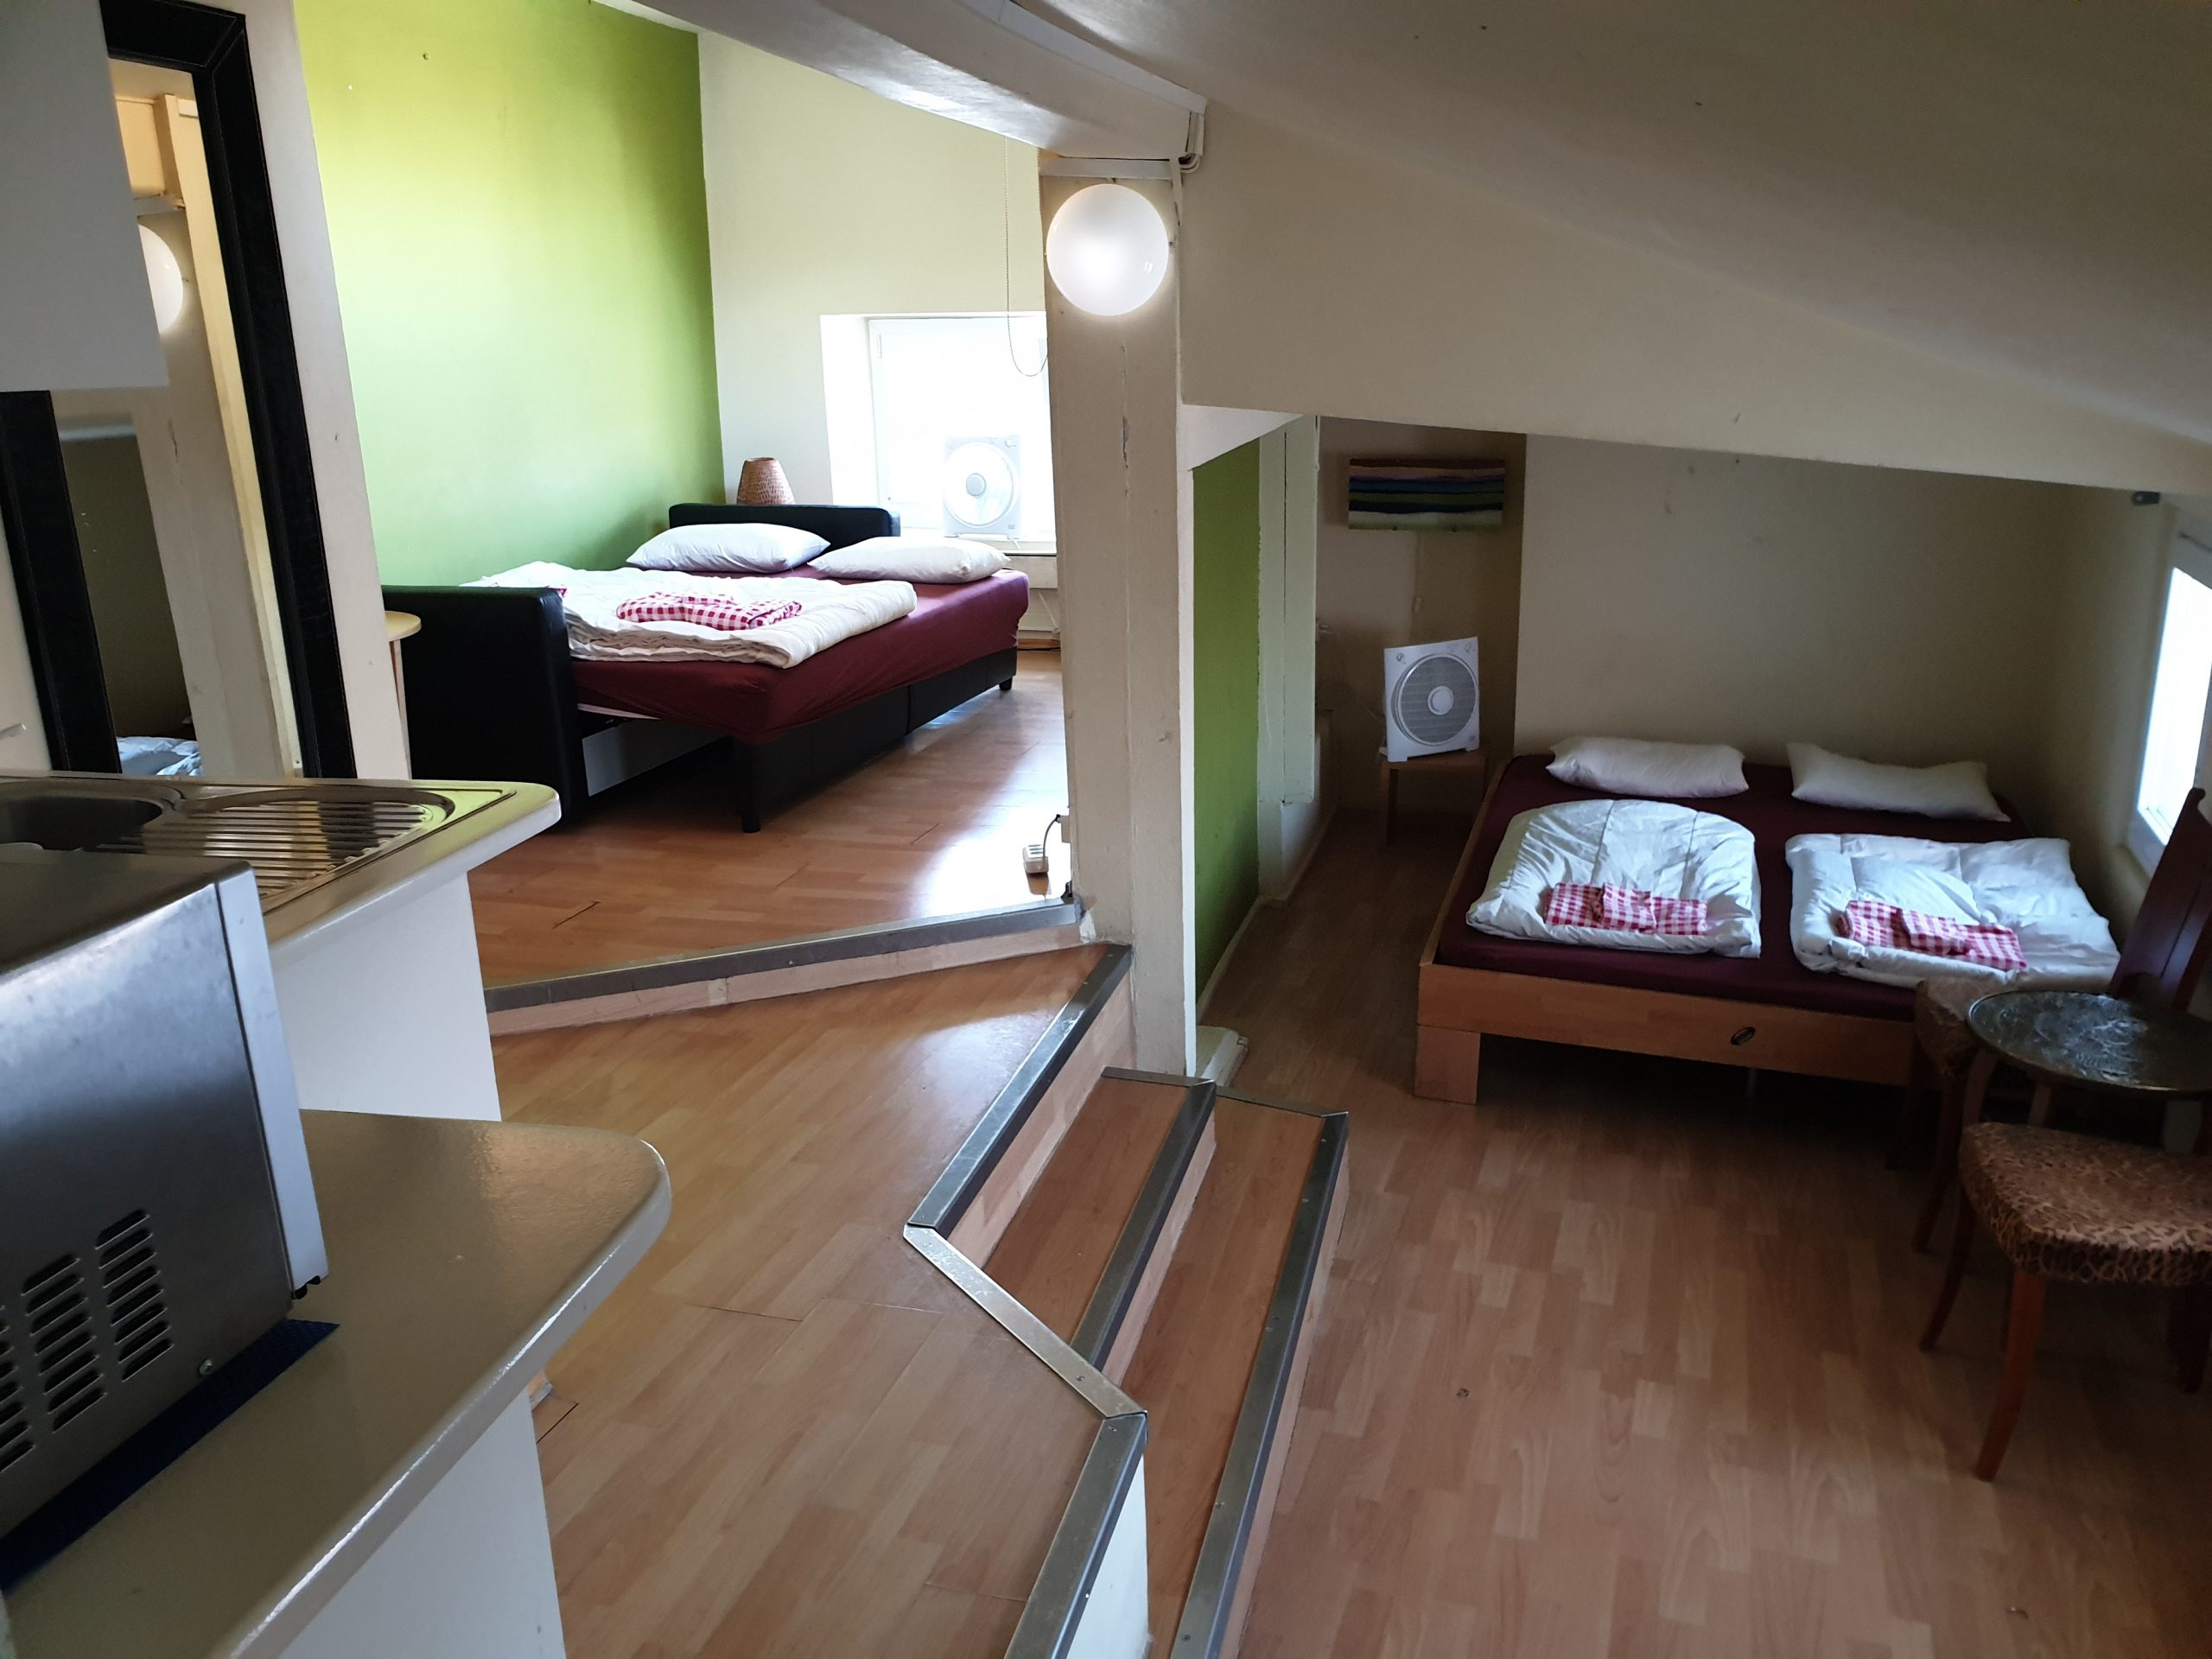 Apartment with kitchenette and shower, 4 persons